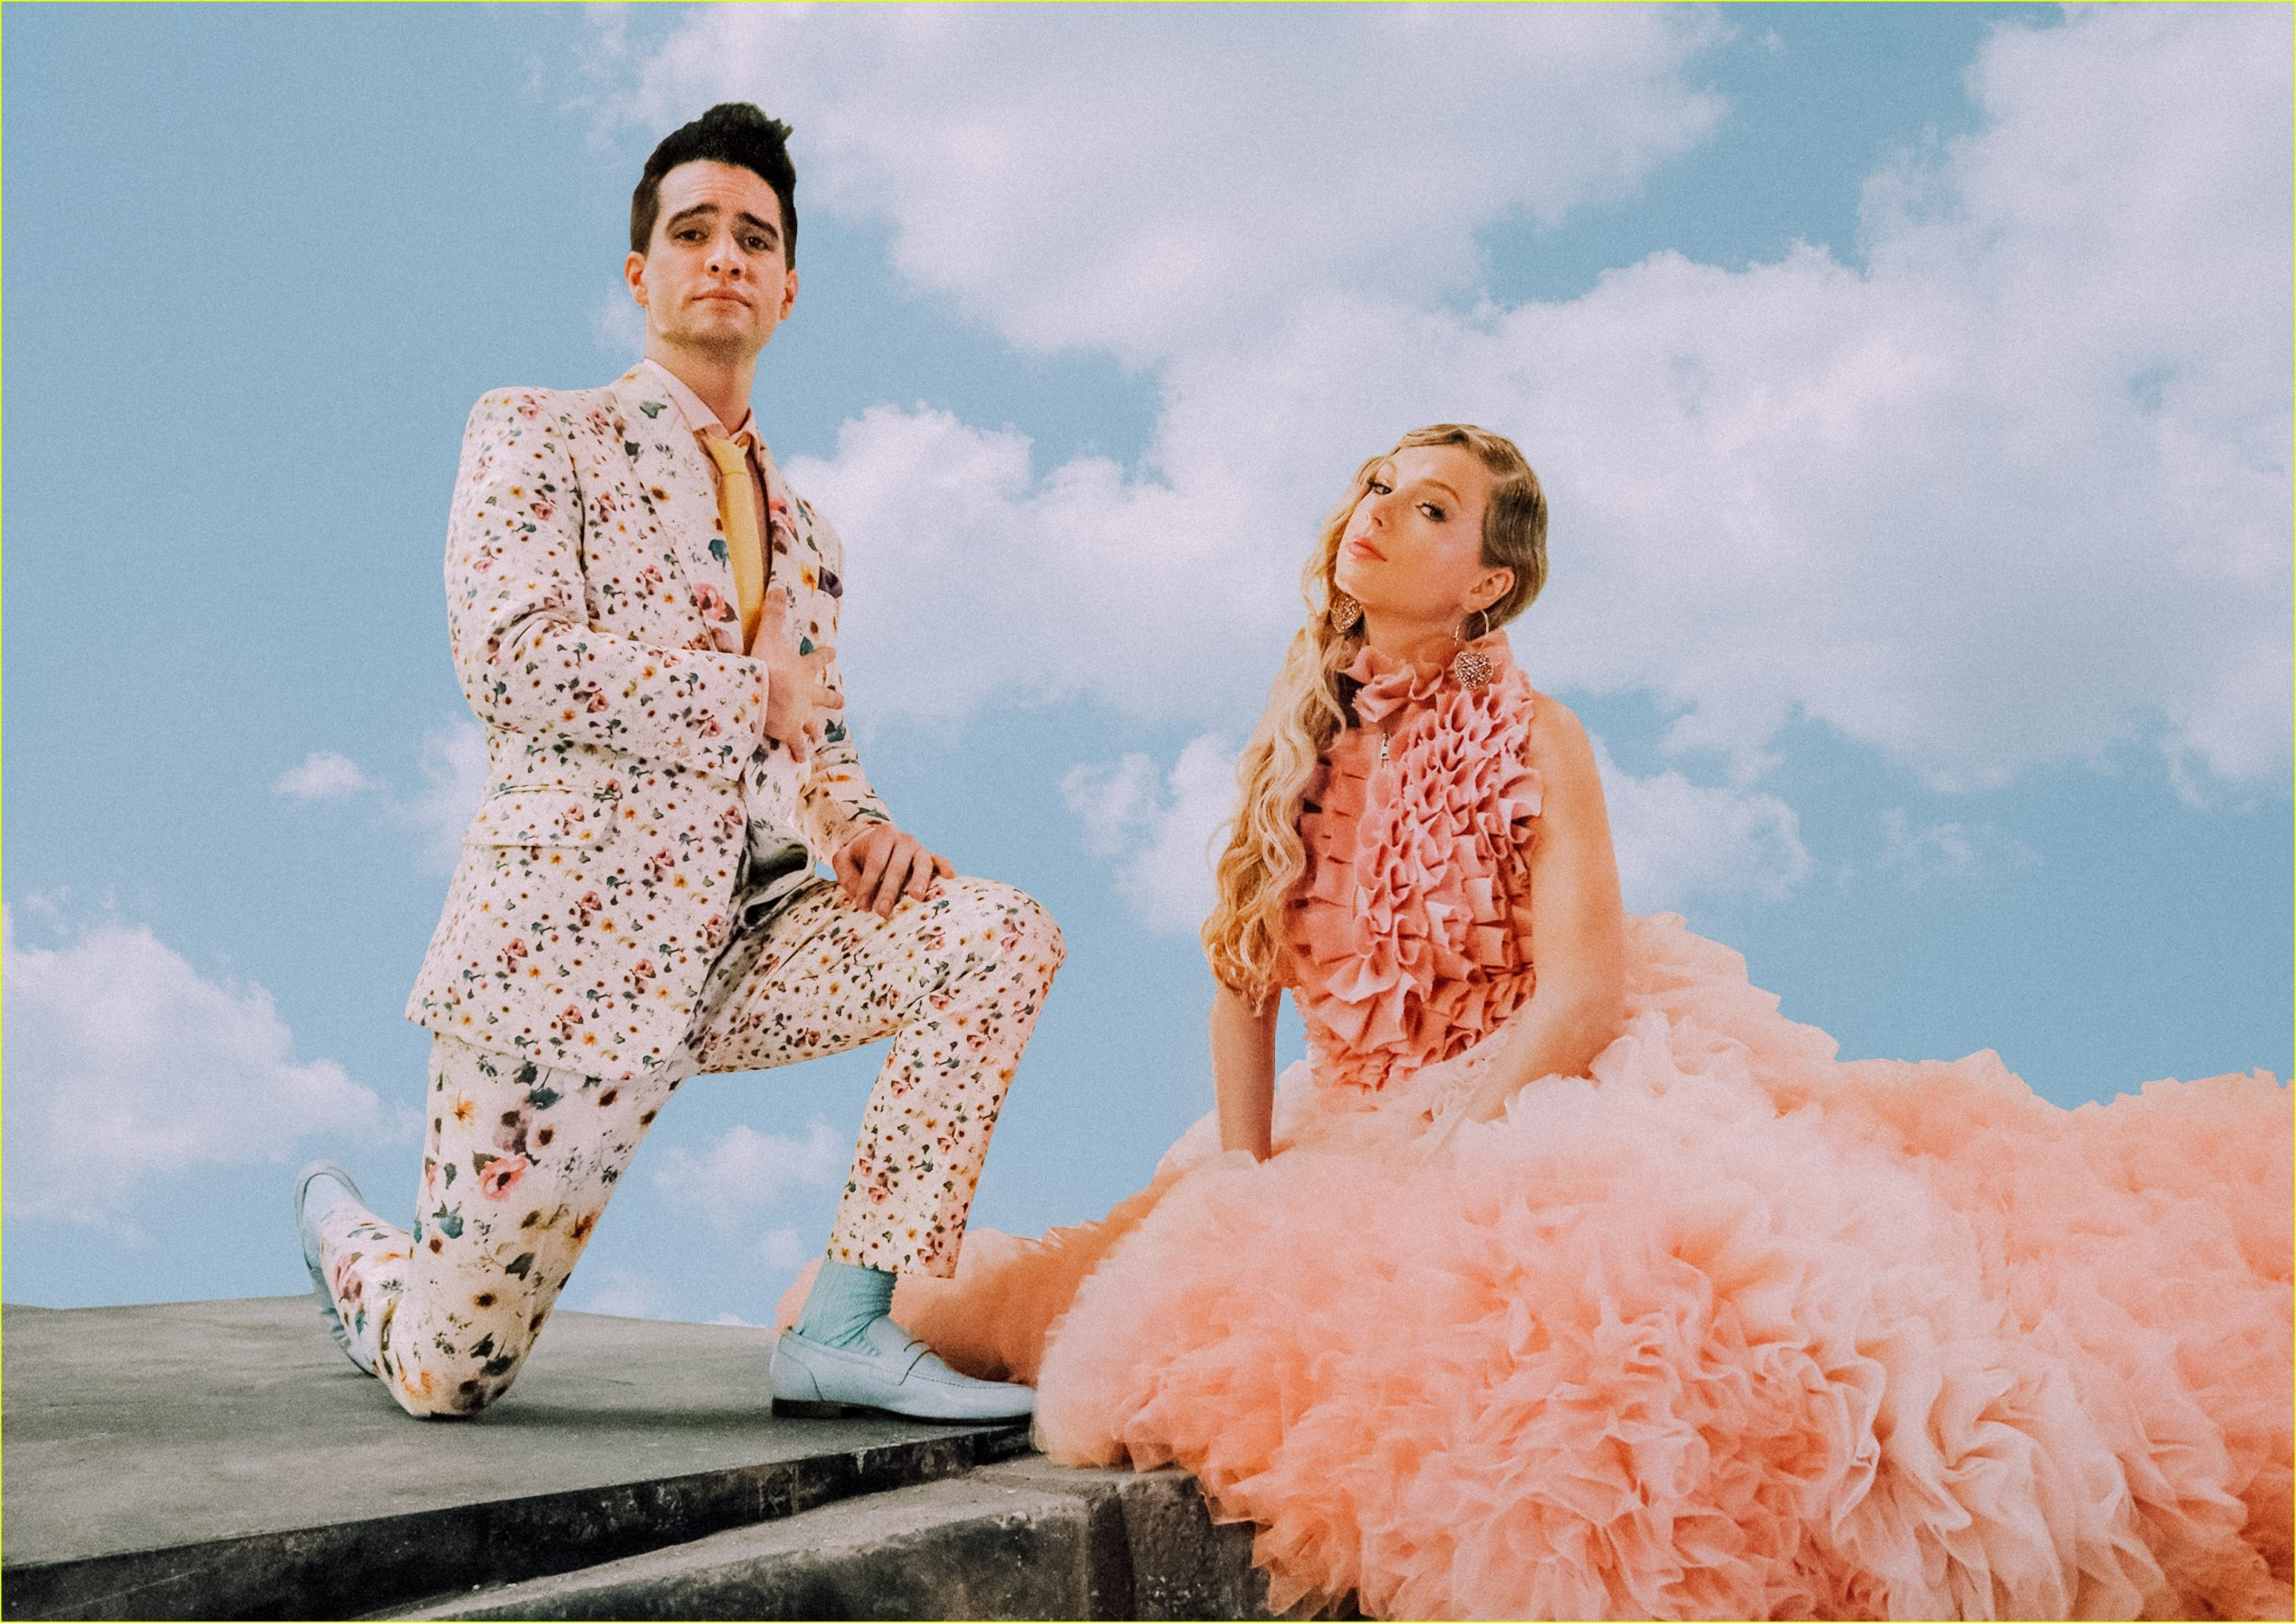 Taylor Swift and Brendon Urie © Valheria Rocha